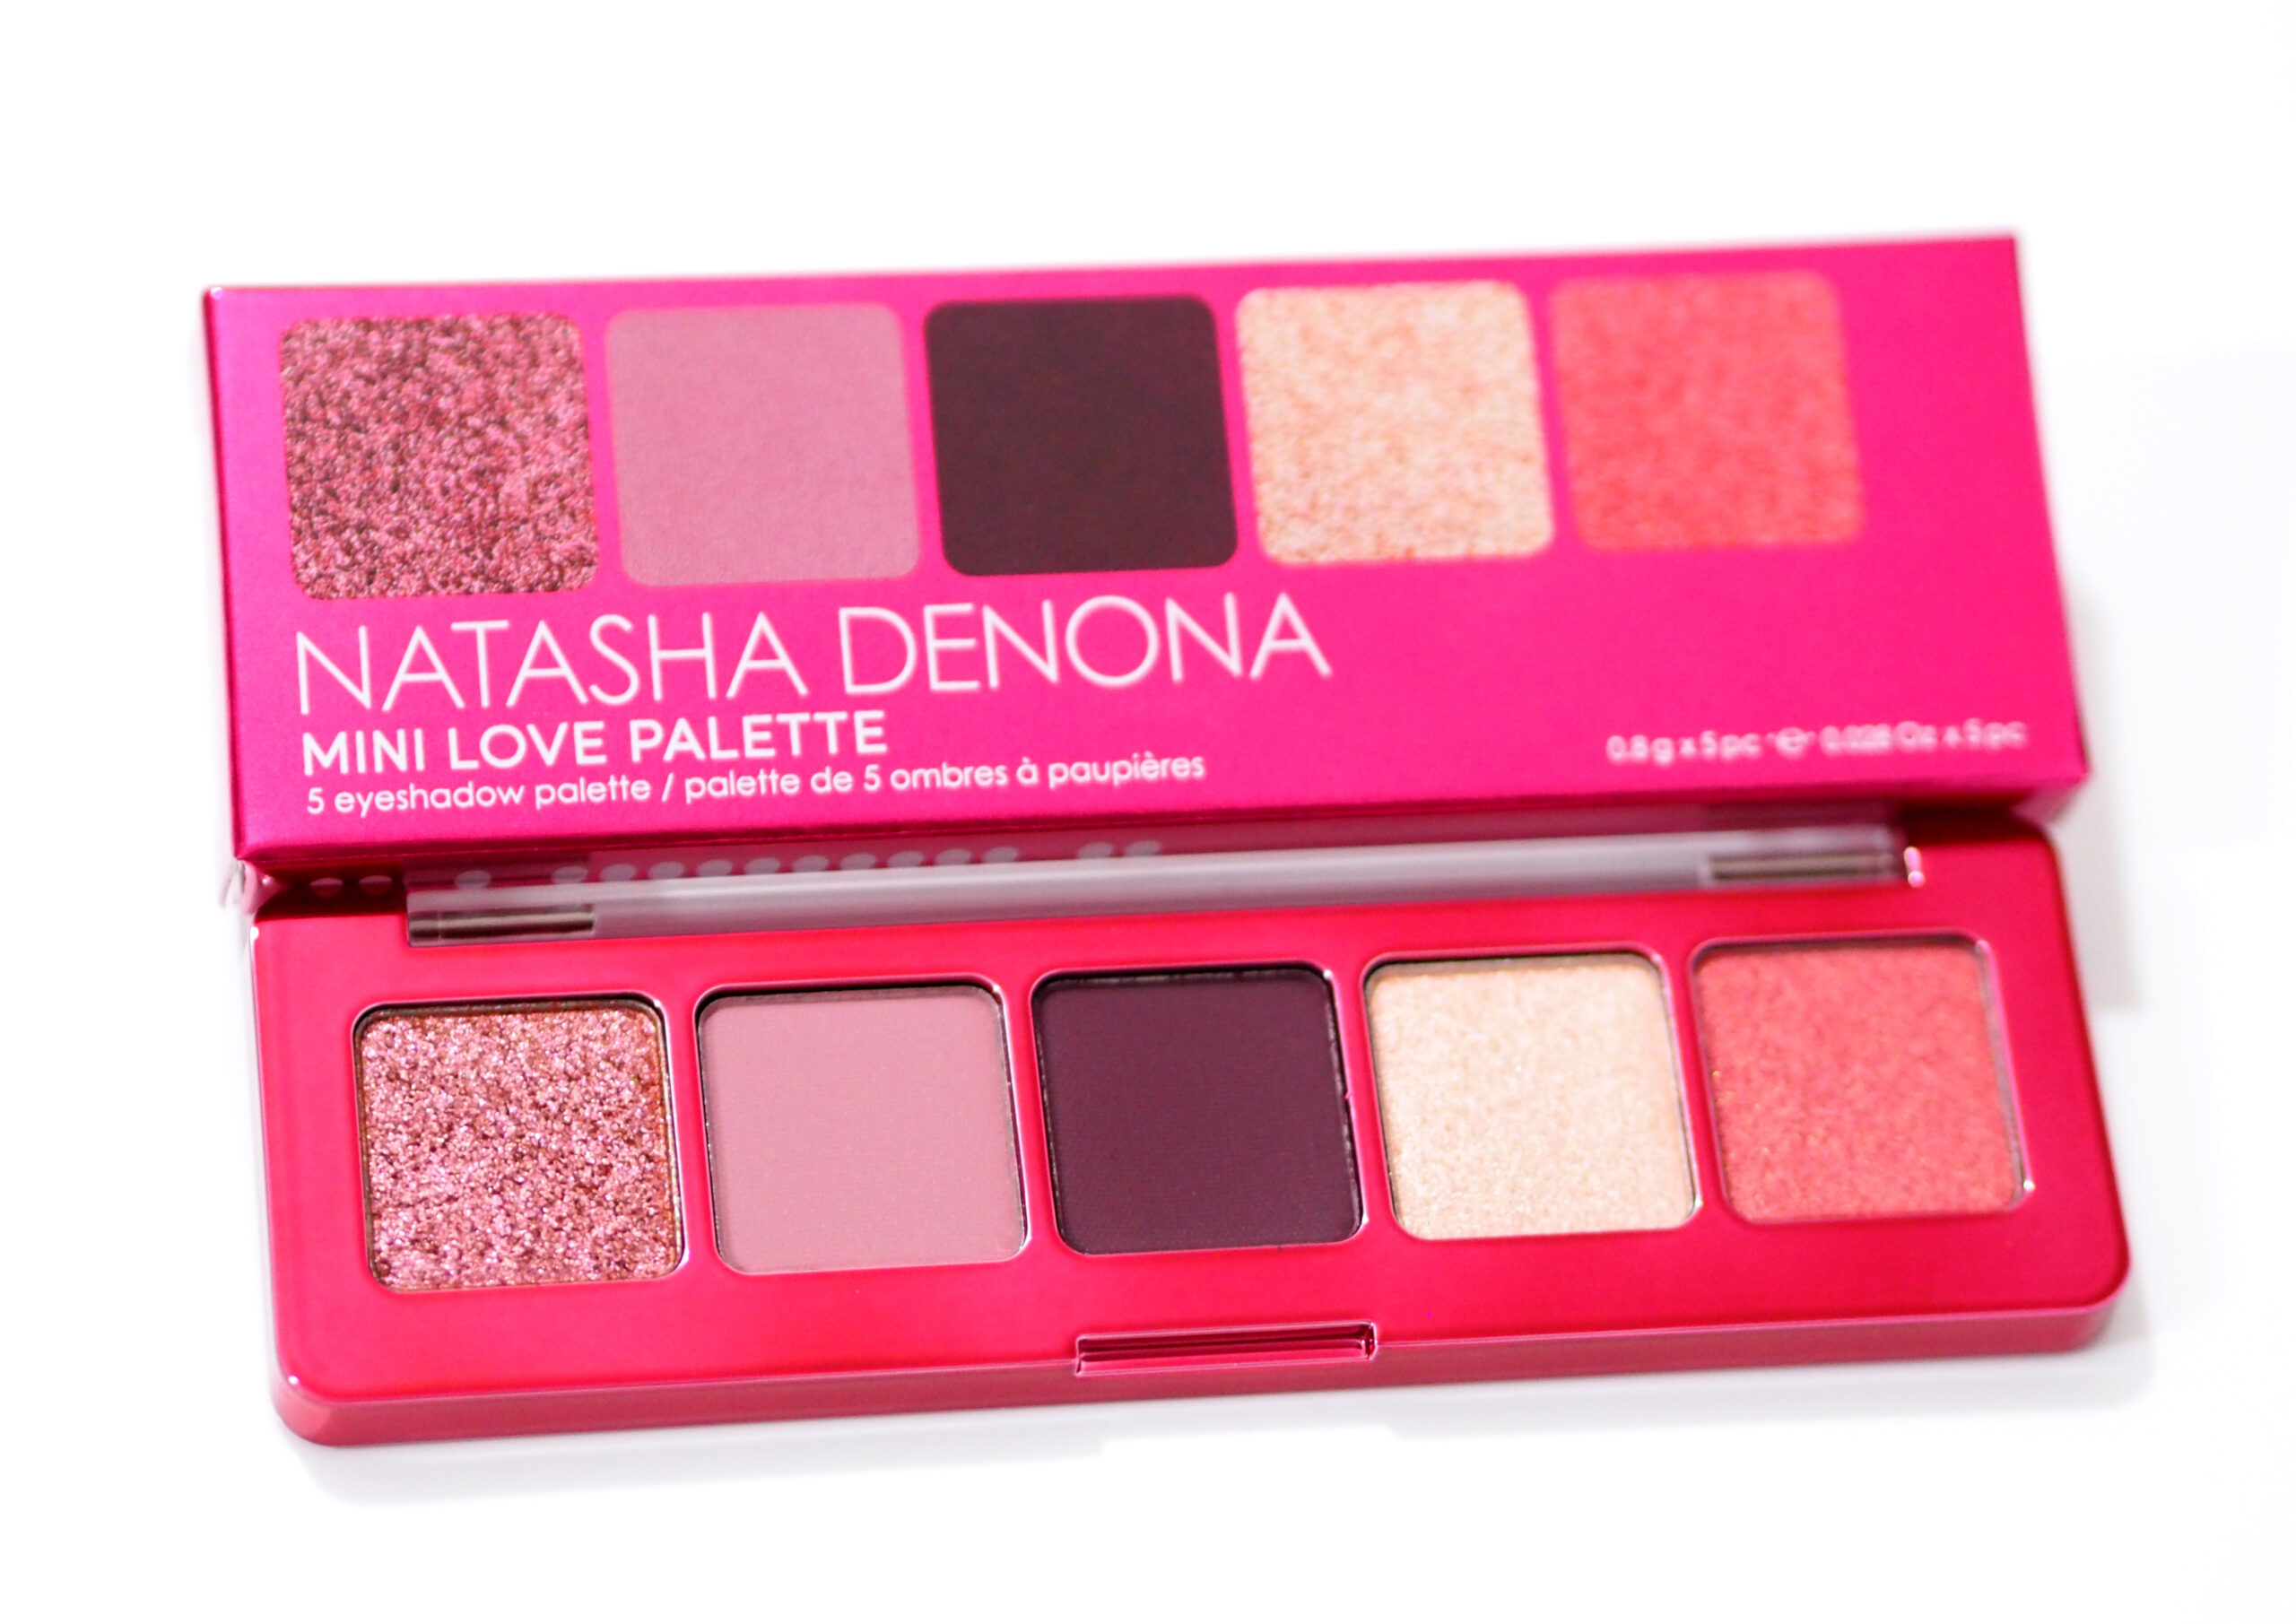 Natasha Denona Mini Love Palette Review and Swatches